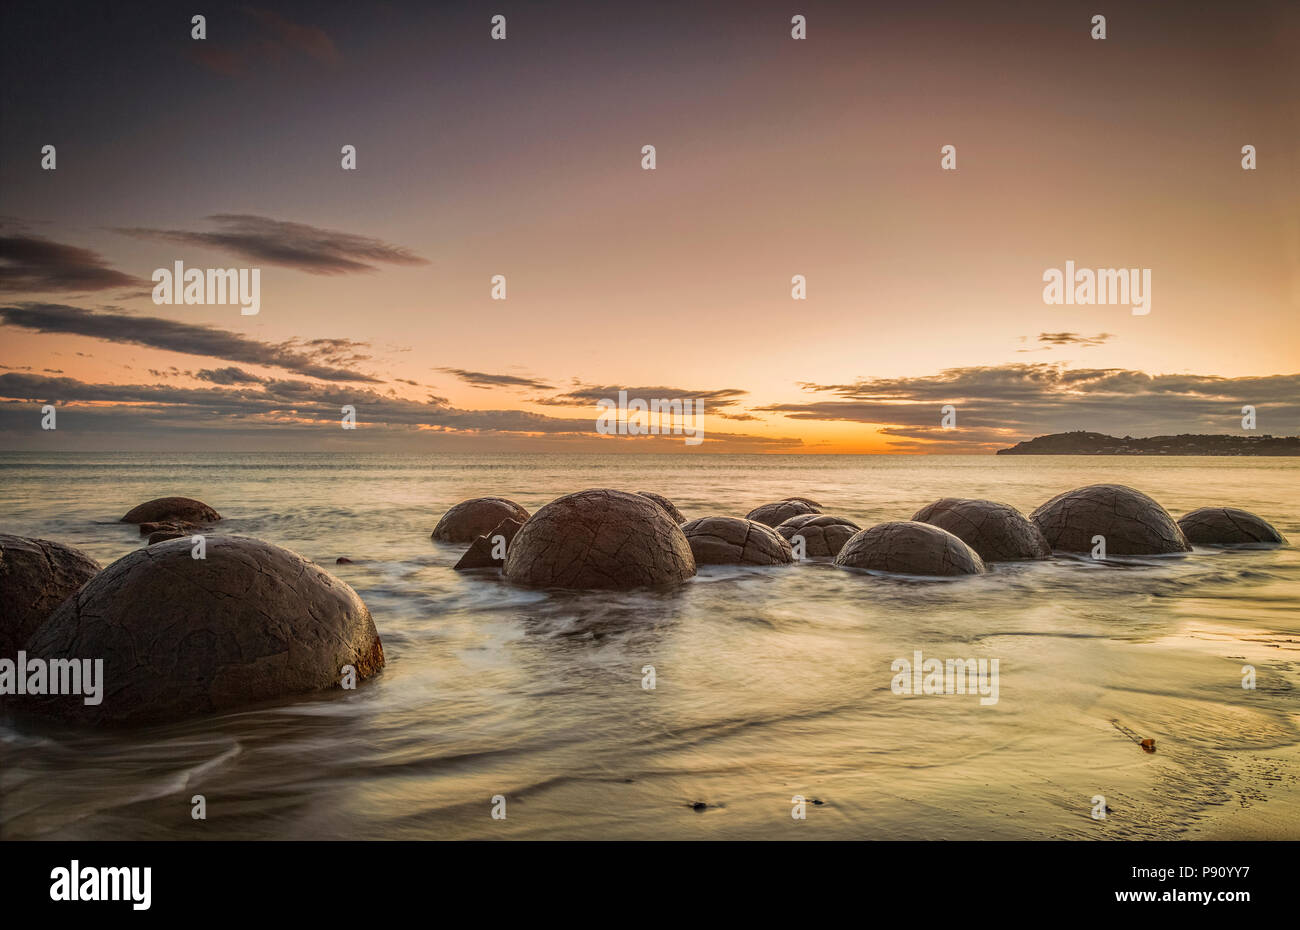 The famous Moeraki Boulders, an icon of New Zealand, in Otago, at sunrise. Stock Photo